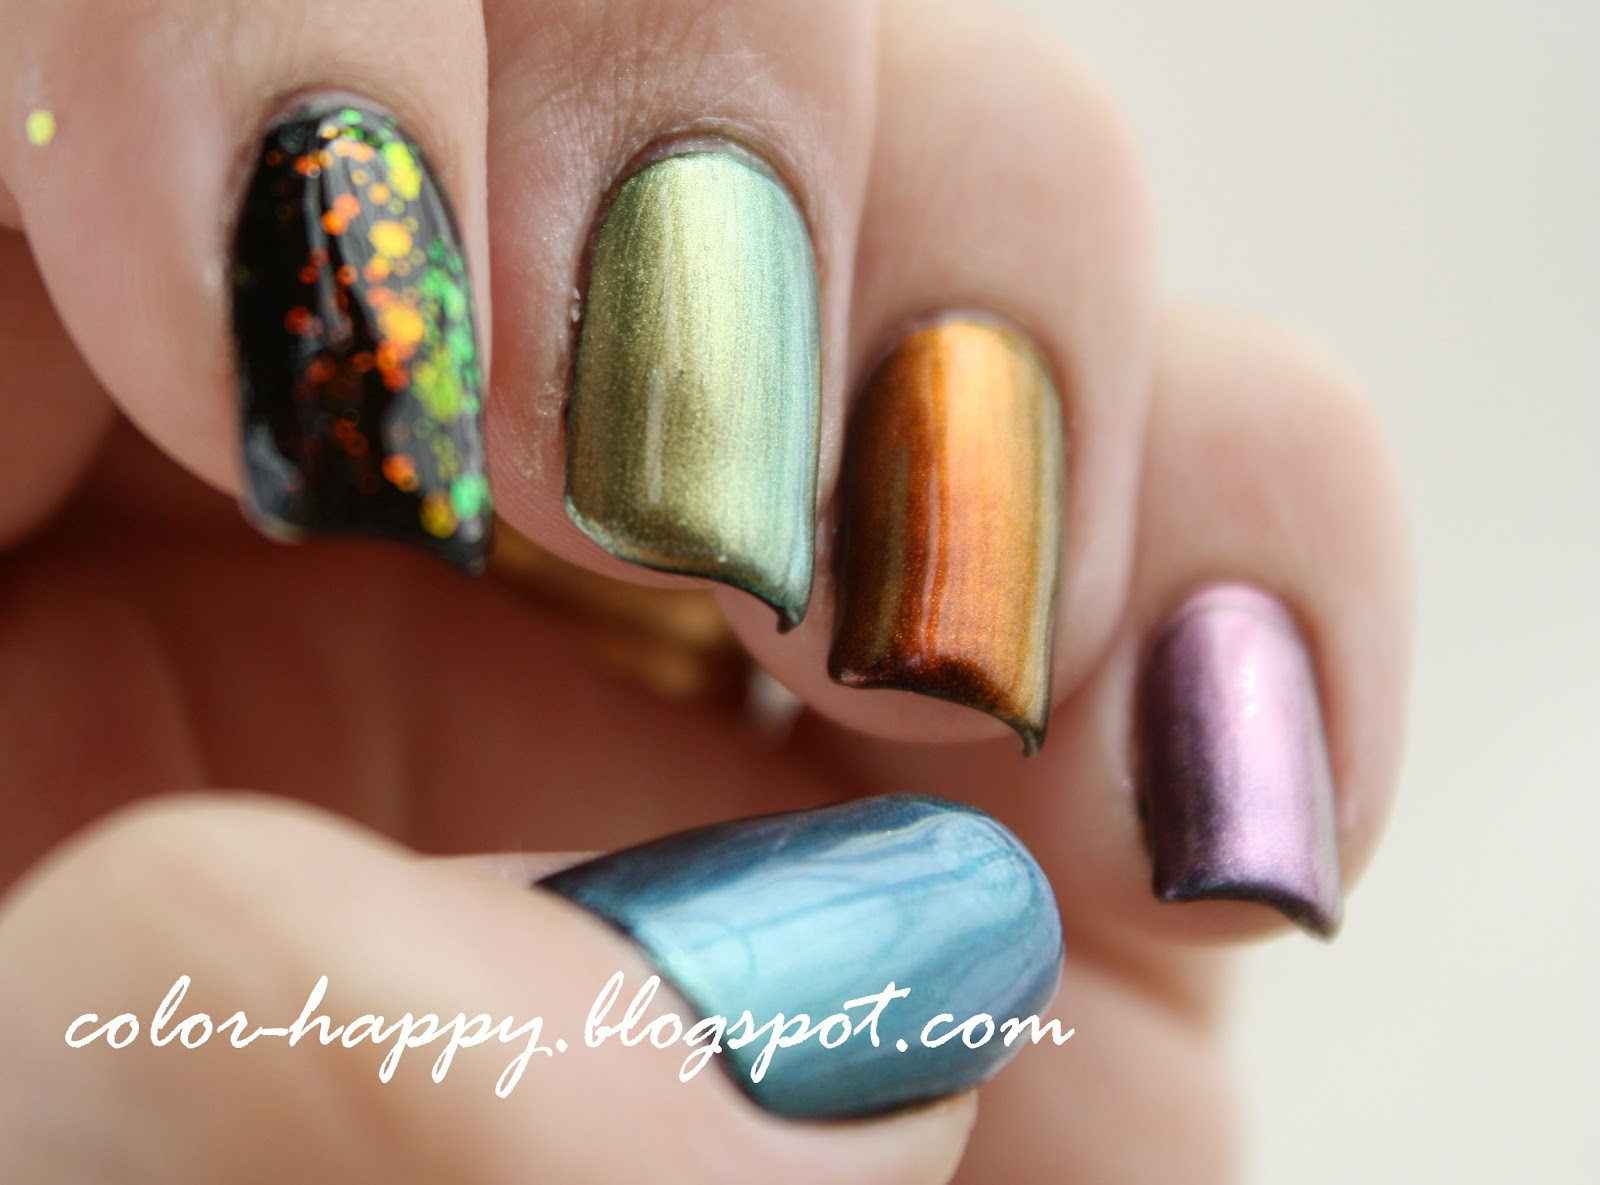 Color Happy Nails Day 22 Redux And Duochrome Swatches